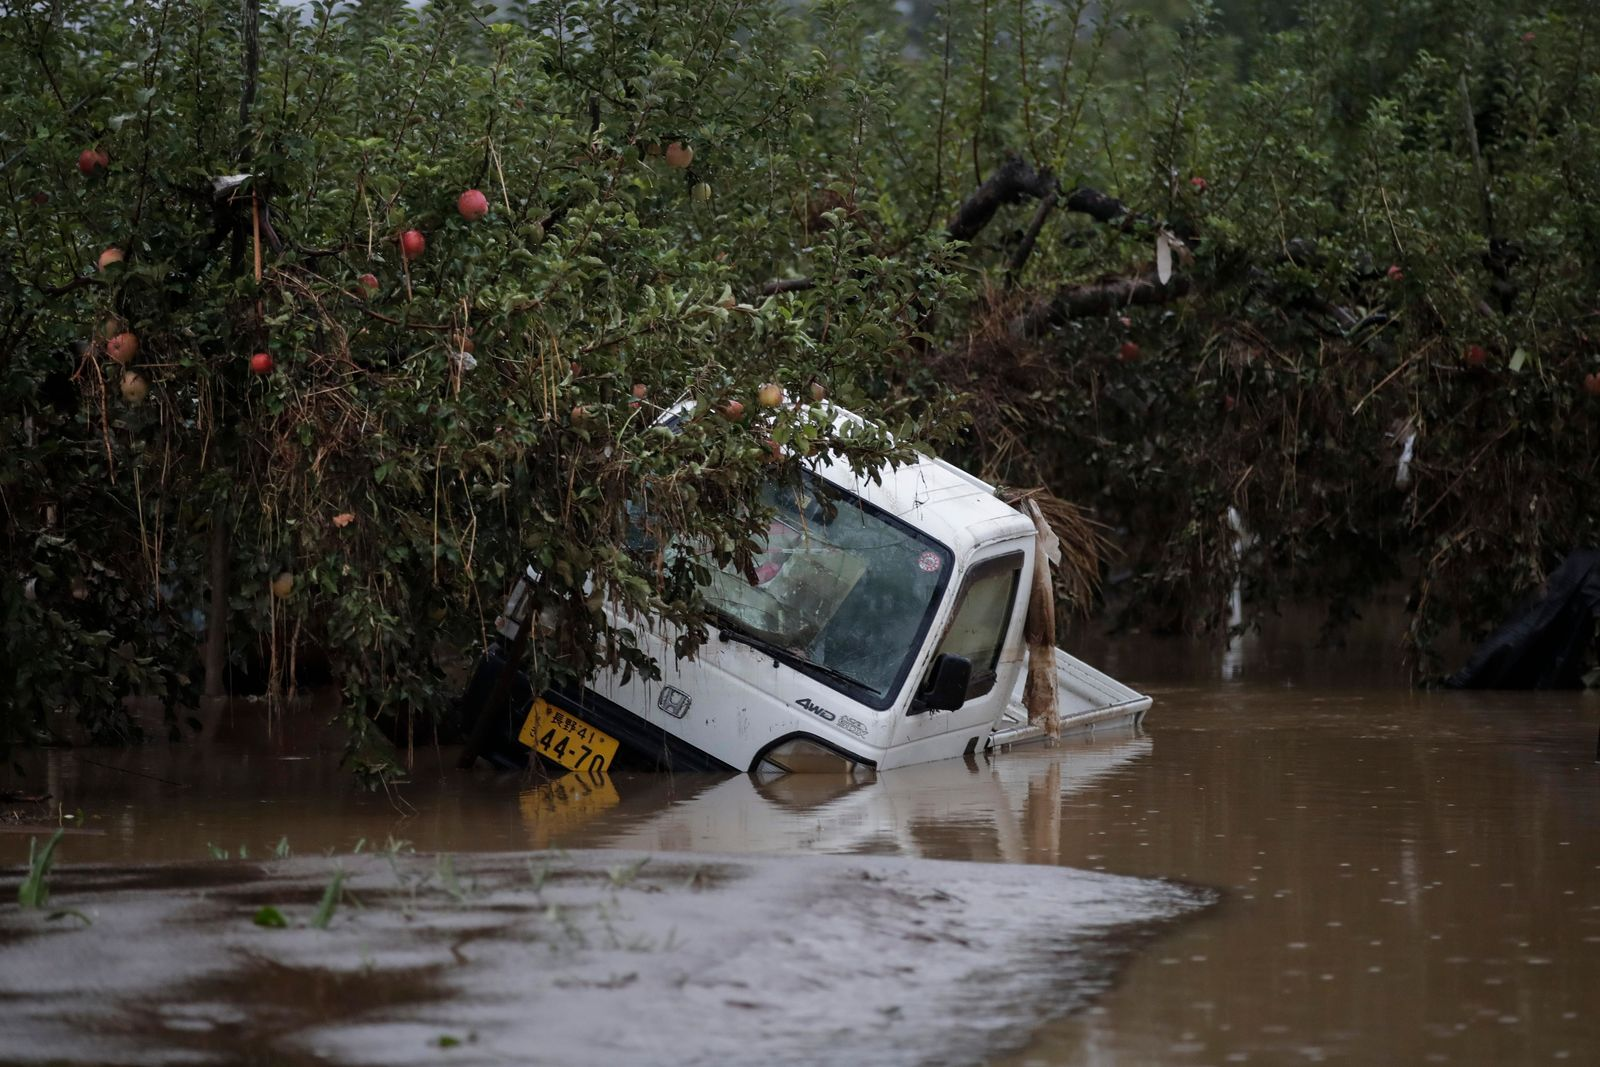 A small pickup truck is submerged in floodwaters at an apple orchard, Monday, Oct. 14, 2019, in Hoyasu, Japan. Rescue crews in Japan dug through mudslides and searched near swollen rivers Monday as they looked for those missing from a typhoon that left as many as 36 dead and caused serious damage in central and northern Japan. (AP Photo/Jae C. Hong)